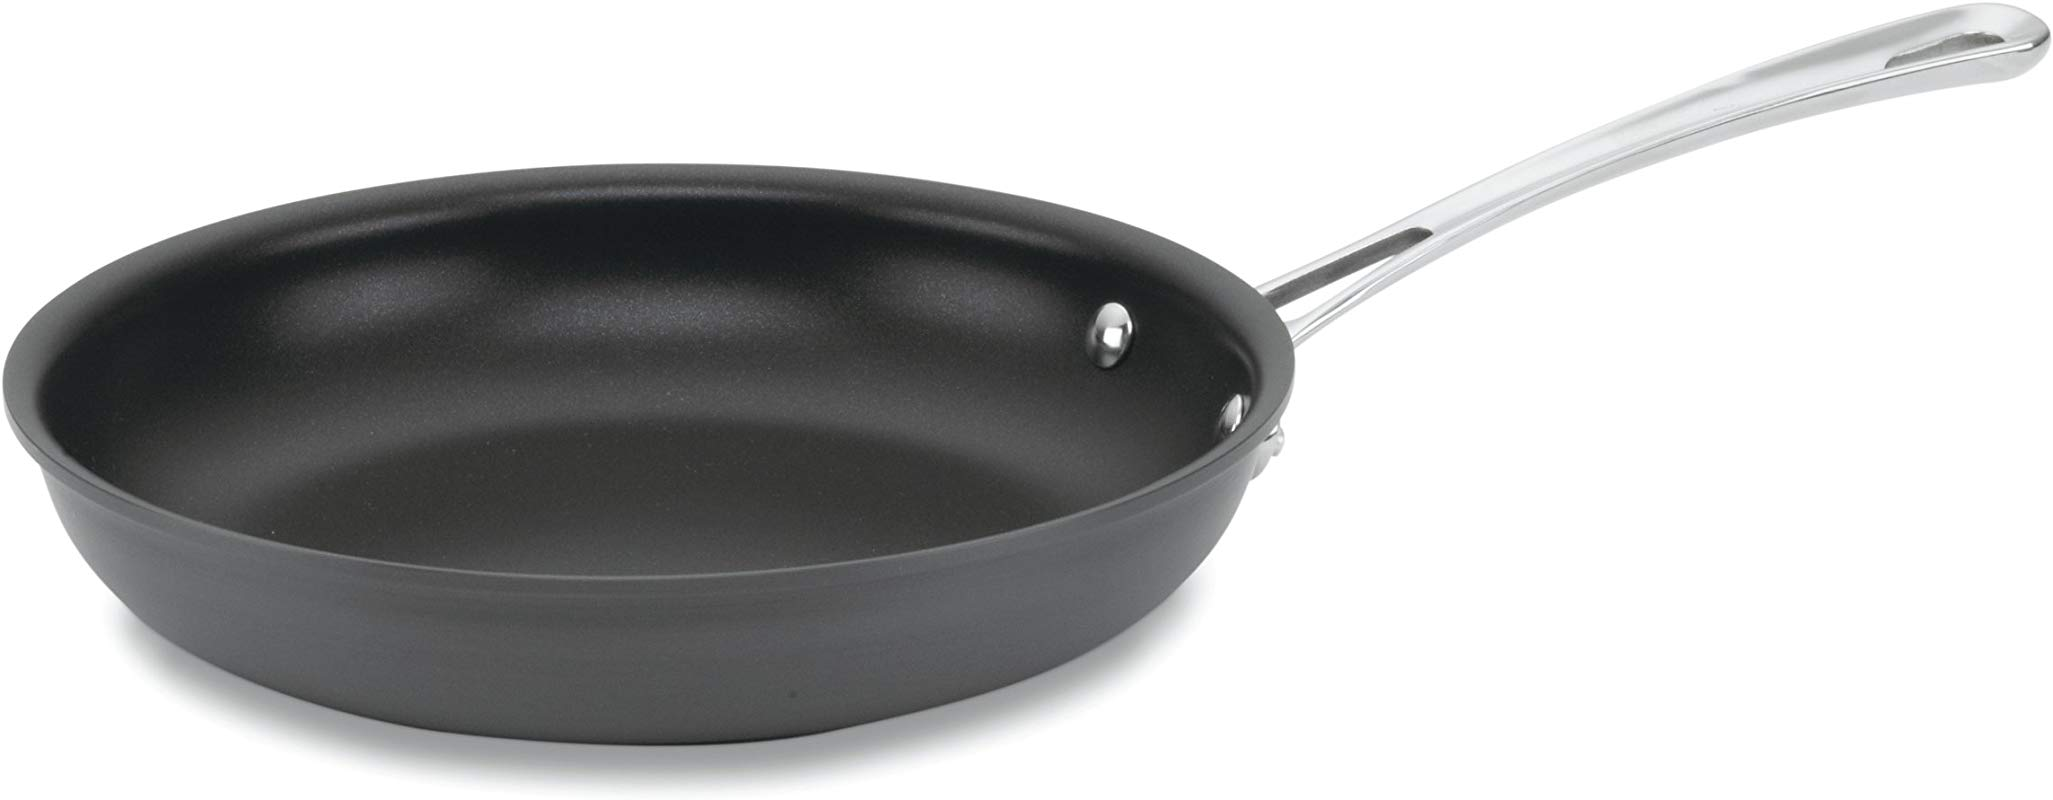 Cuisinart 6422 24 Contour Hard Anodized 10 Inch Open Skillet